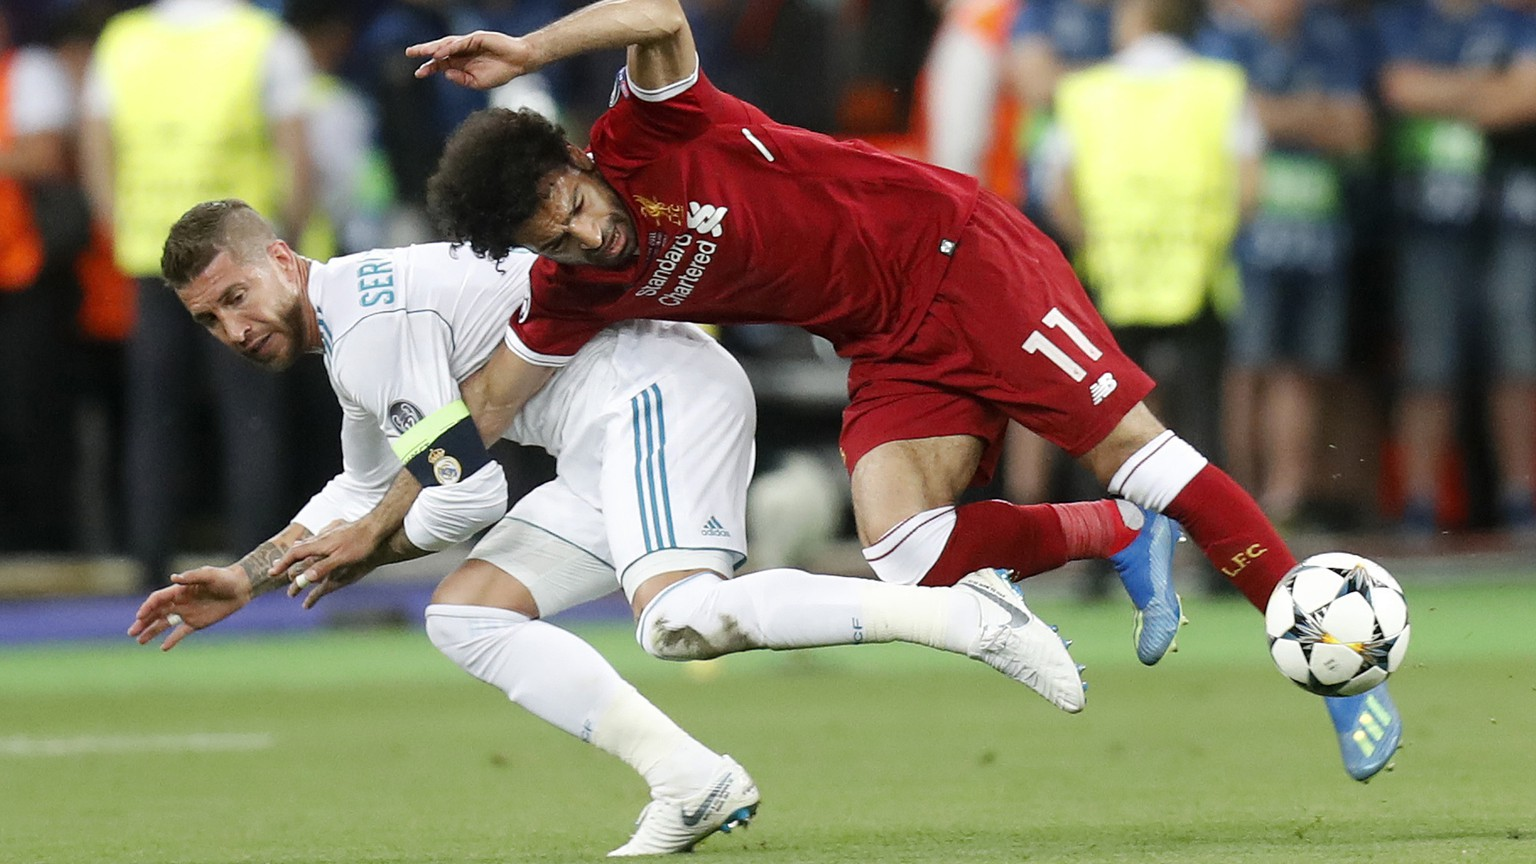 FILE - In this Saturday, May 26, 2018 file photo Real Madrid's Sergio Ramos, left, fouls Liverpool's Mohamed Salah during the Champions League Final soccer match between Real Madrid and Liverpool at the Olimpiyskiy Stadium in Kiev, Ukraine. Sergio Ramos isn't taking blame for the challenge that ended hurting Egypt star Mohamed Salah in the Champions League final. Salah left the field in tears after injuring his left shoulder in a tussle with Ramos with the score 0-0 in the first half. (AP Photo/Efrem Lukatsky, File)